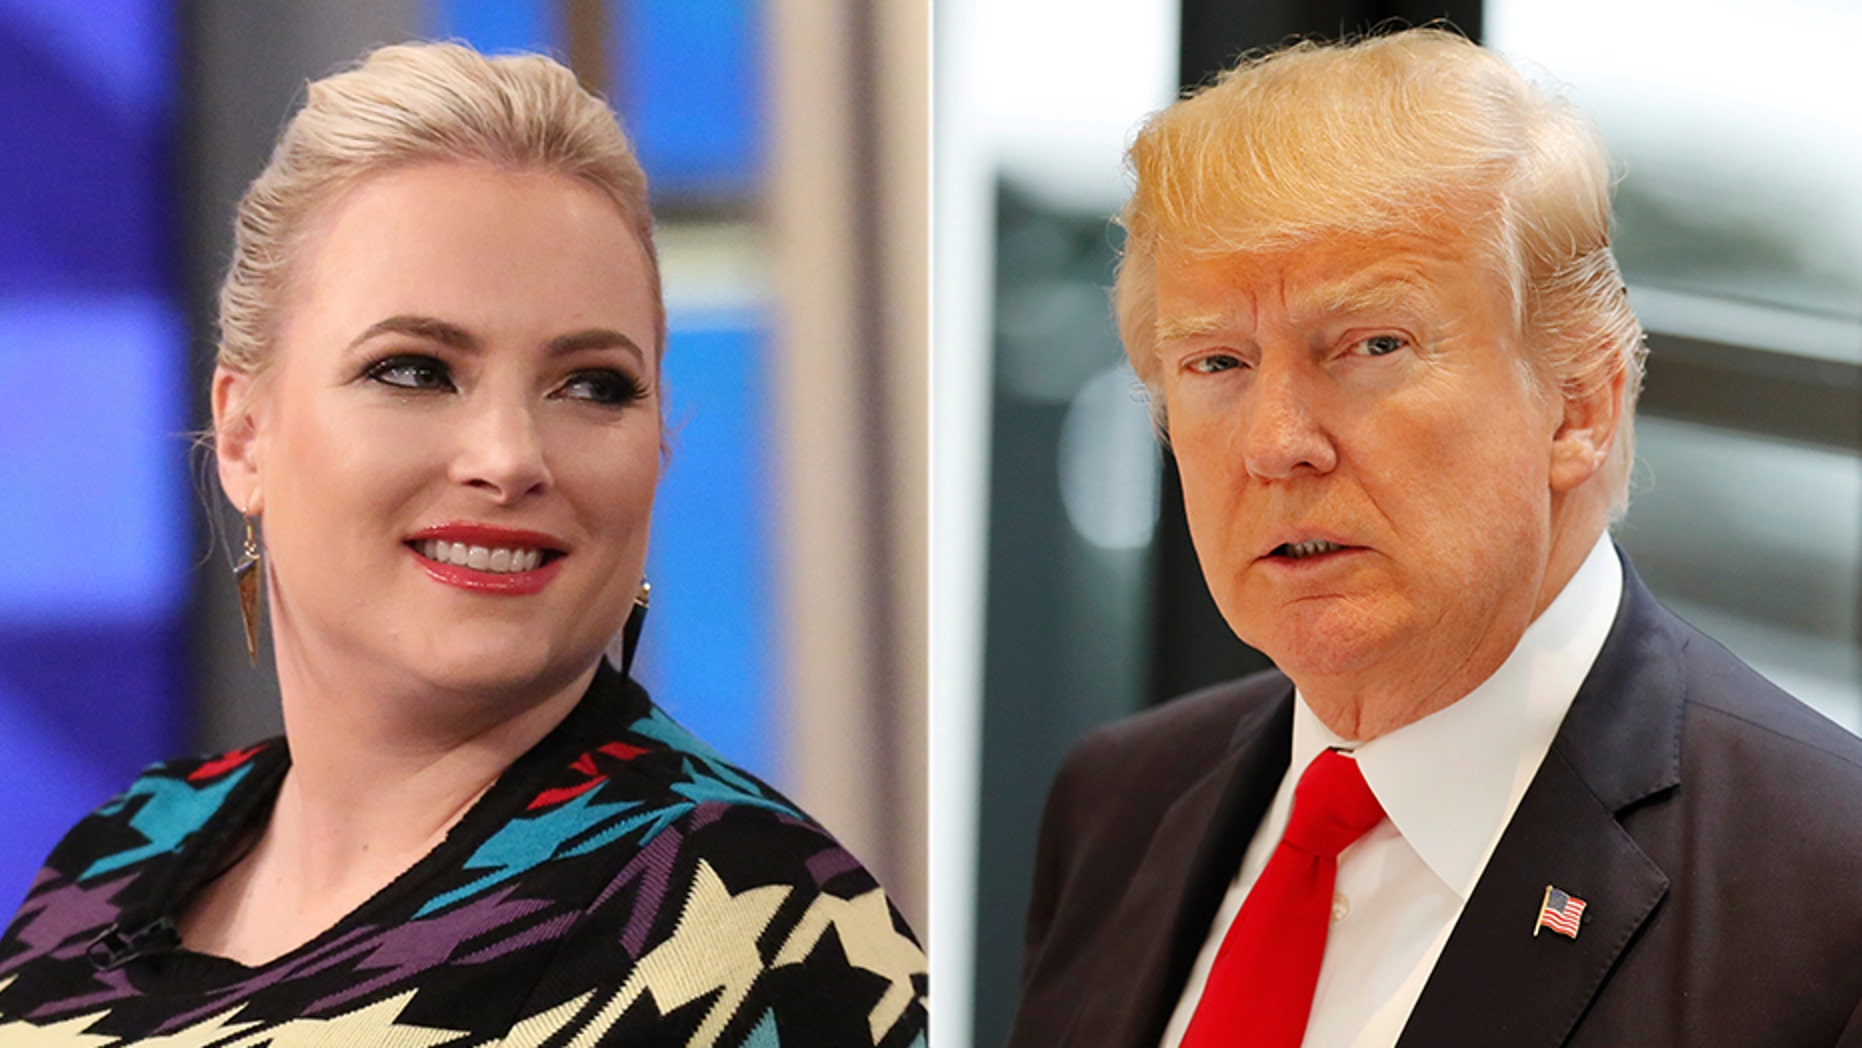 Meghan McCain has slammed Donald Trump over the president's recent attacks on her late father.